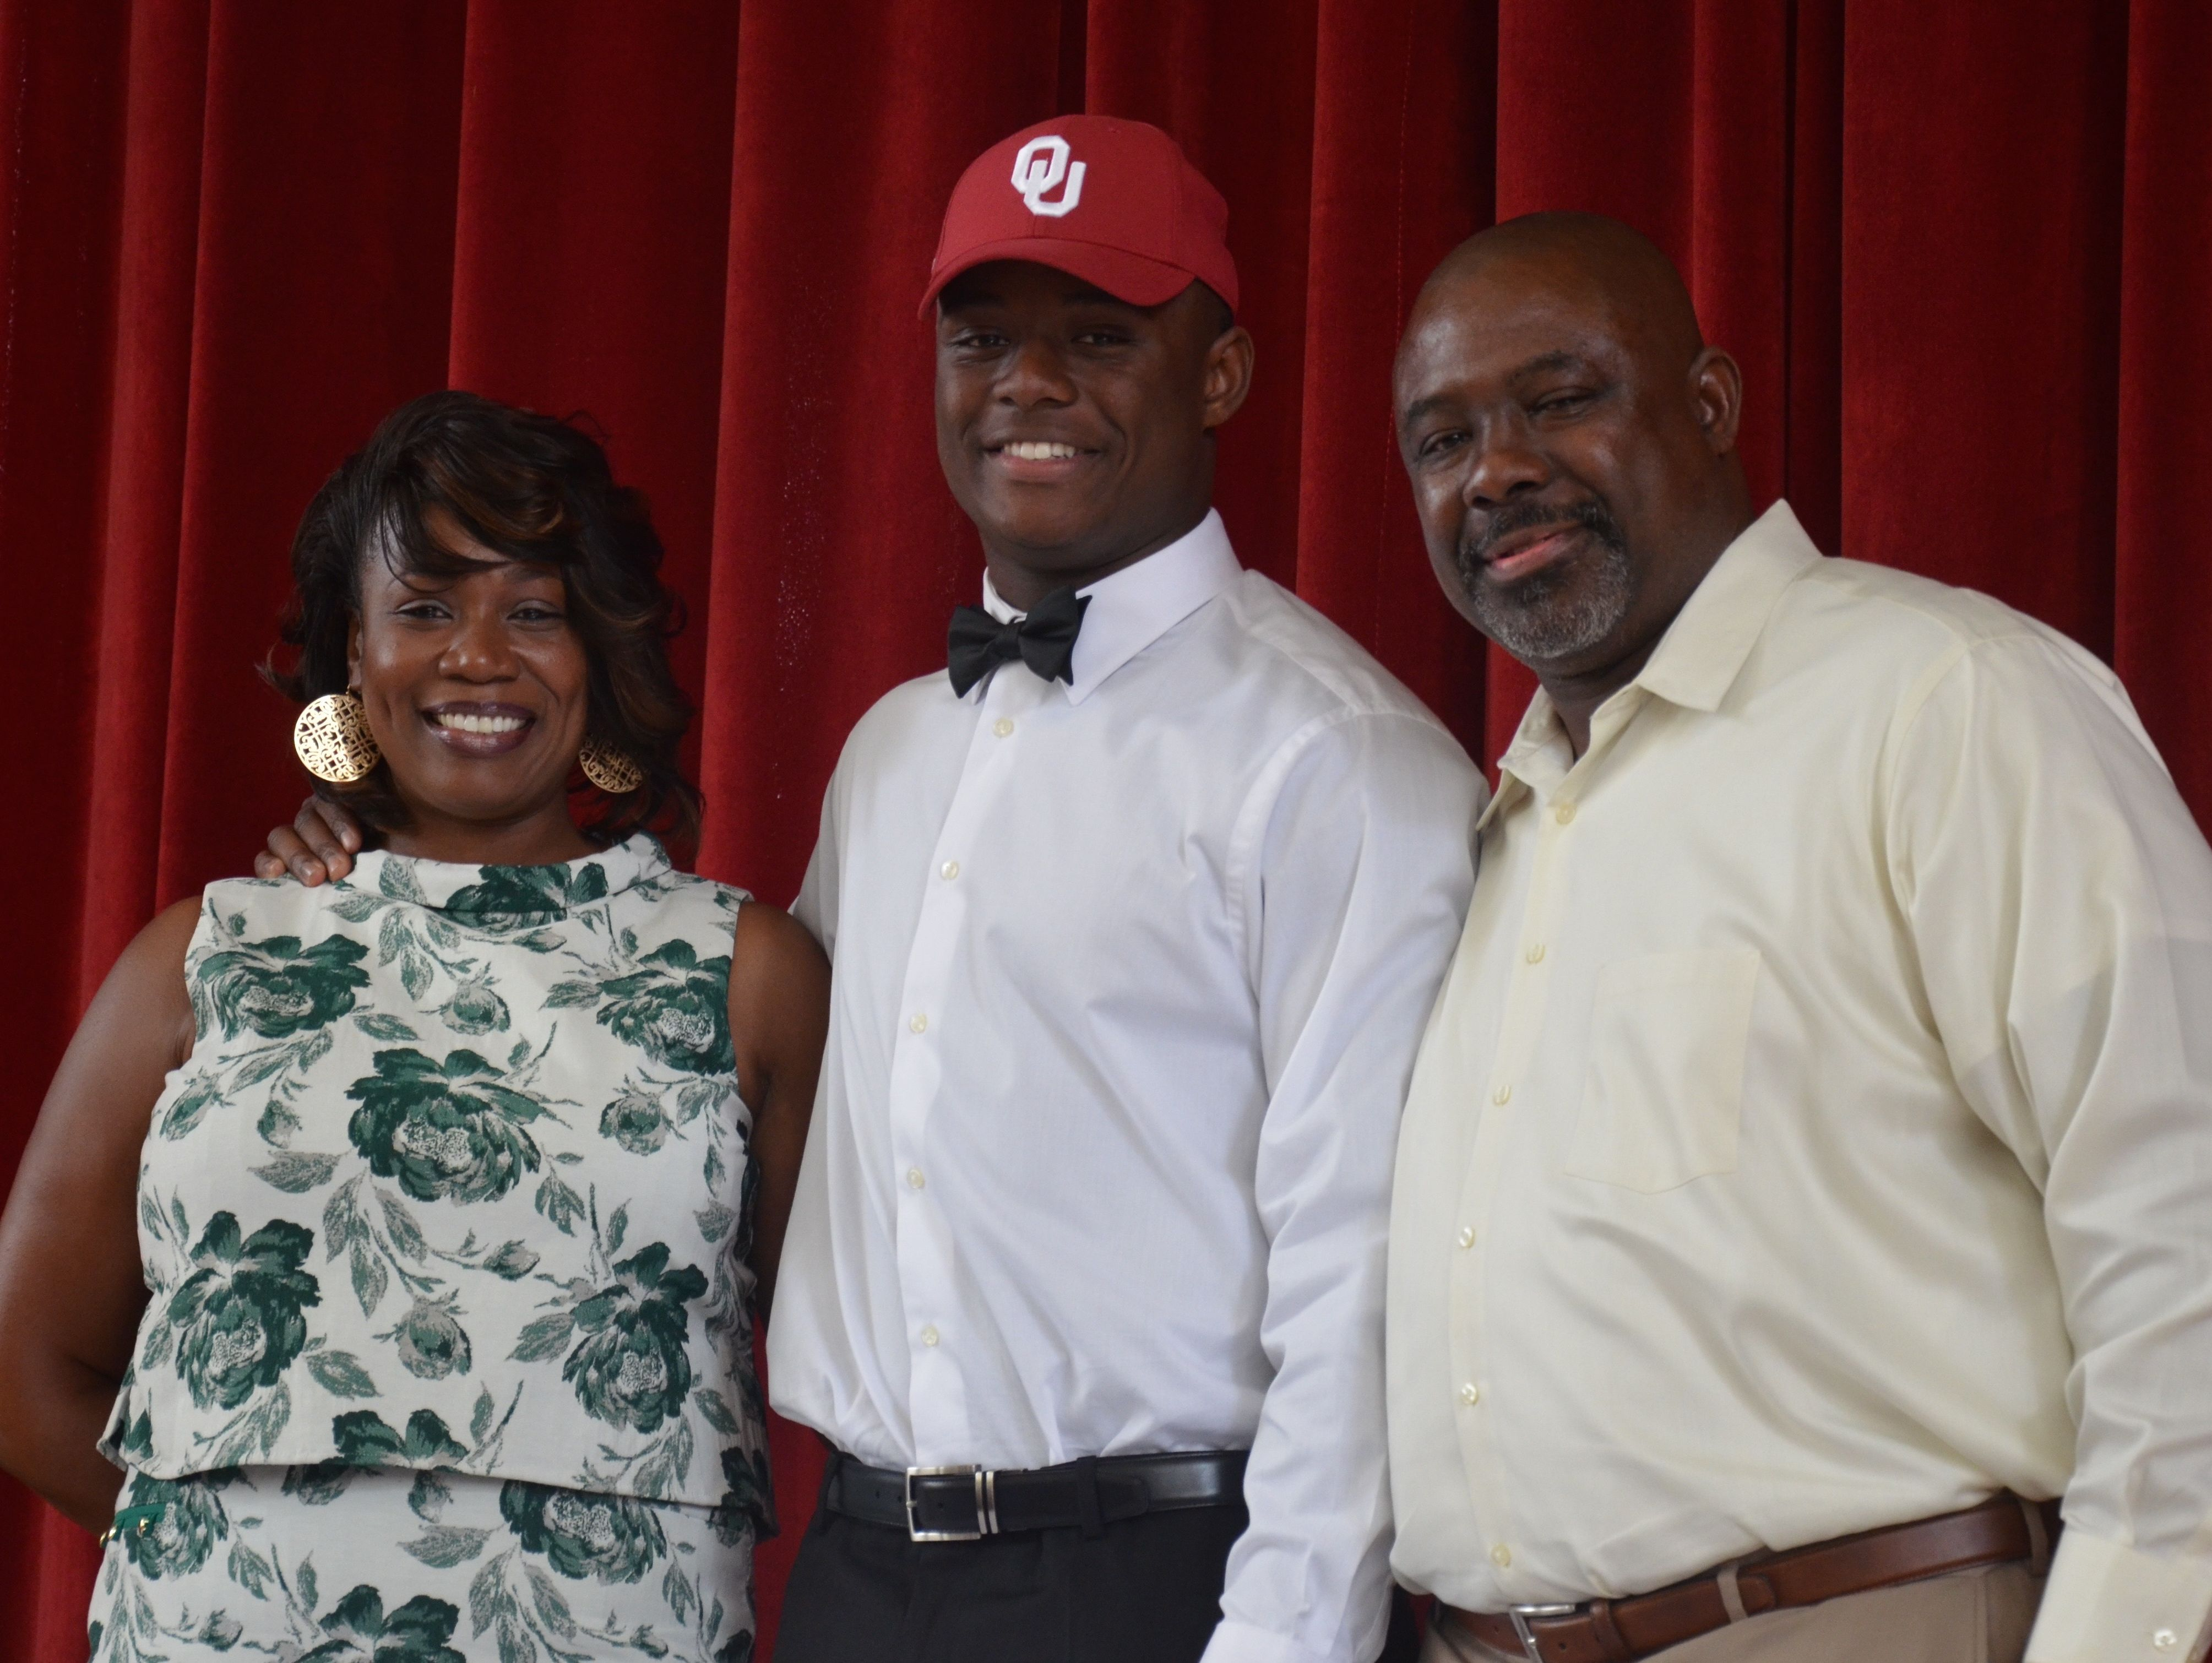 East Nashville linebacker Jacob Phillips, joined by his mother Tami and father Derrick, committed to Oklahoma on Wednesday afternoon.